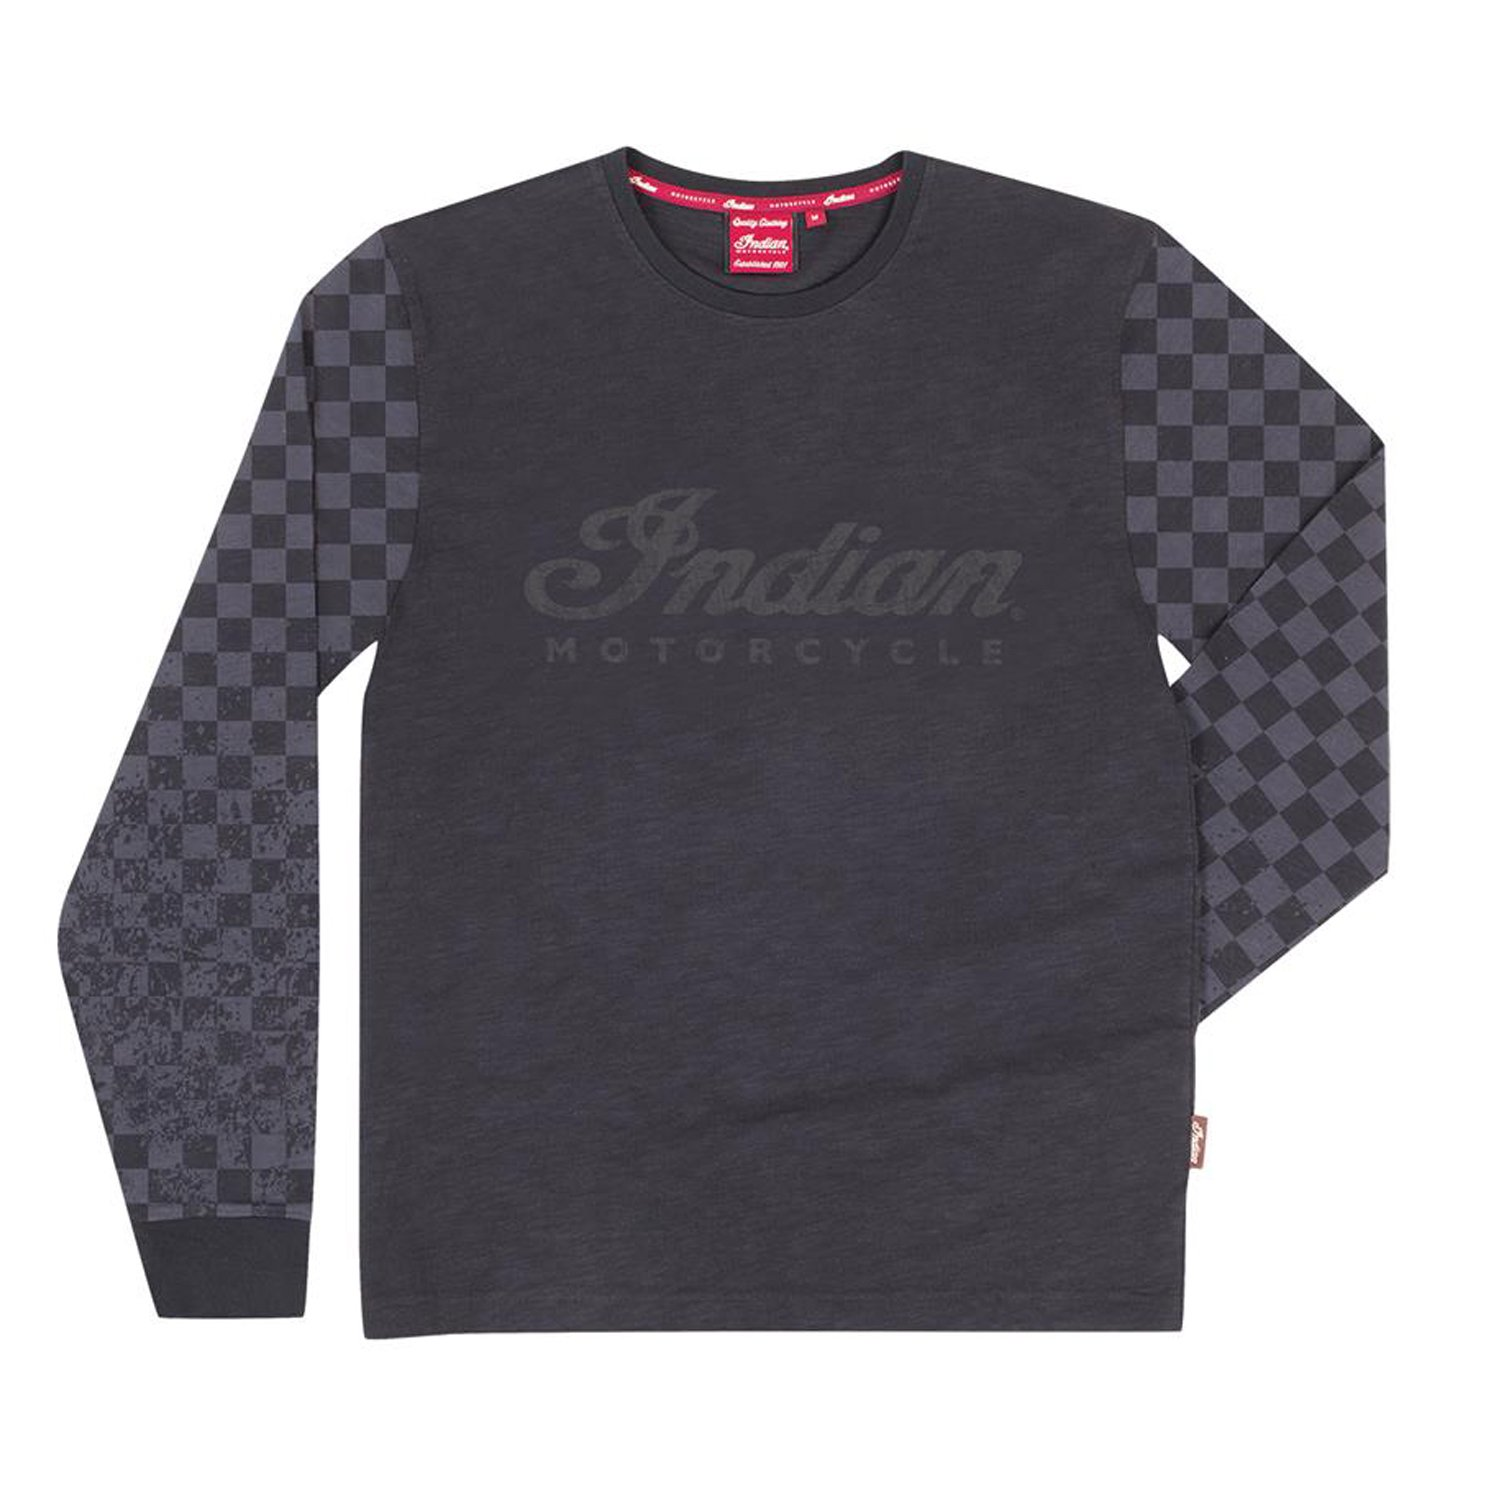 Men's Long-Sleeve T-Shirt with Checkered Sleeves, Black